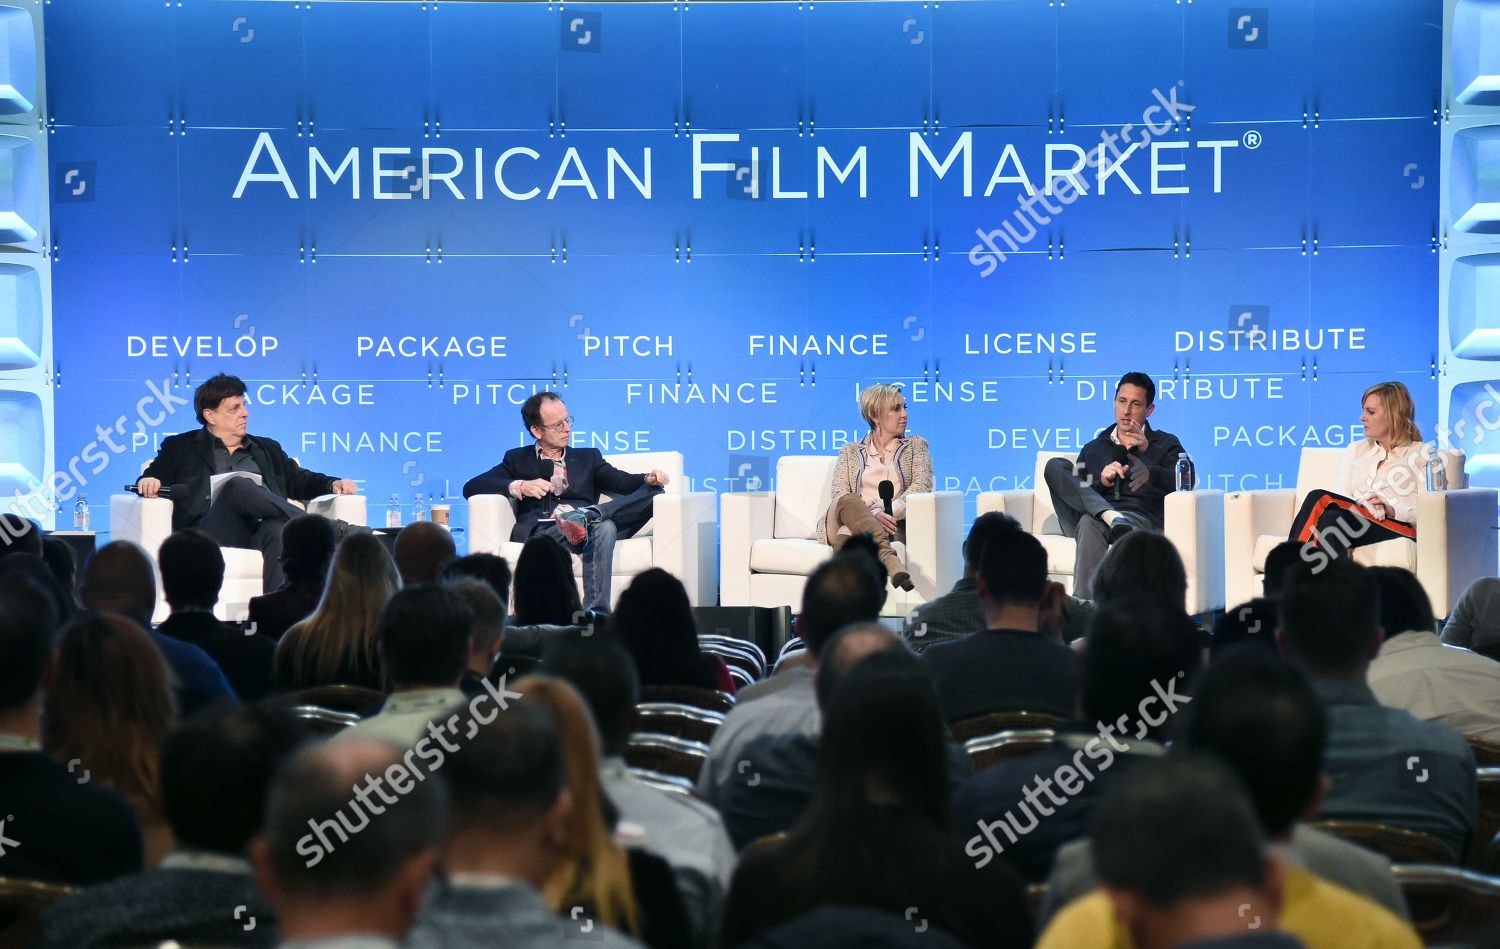 Stock photo of AFM Production Conference - Producing for the International Pre-Sales Marketplace, American Film Market 2019, Fairmont Hotel, Santa Monica, Los Angeles, USA - 11 Nov 2019